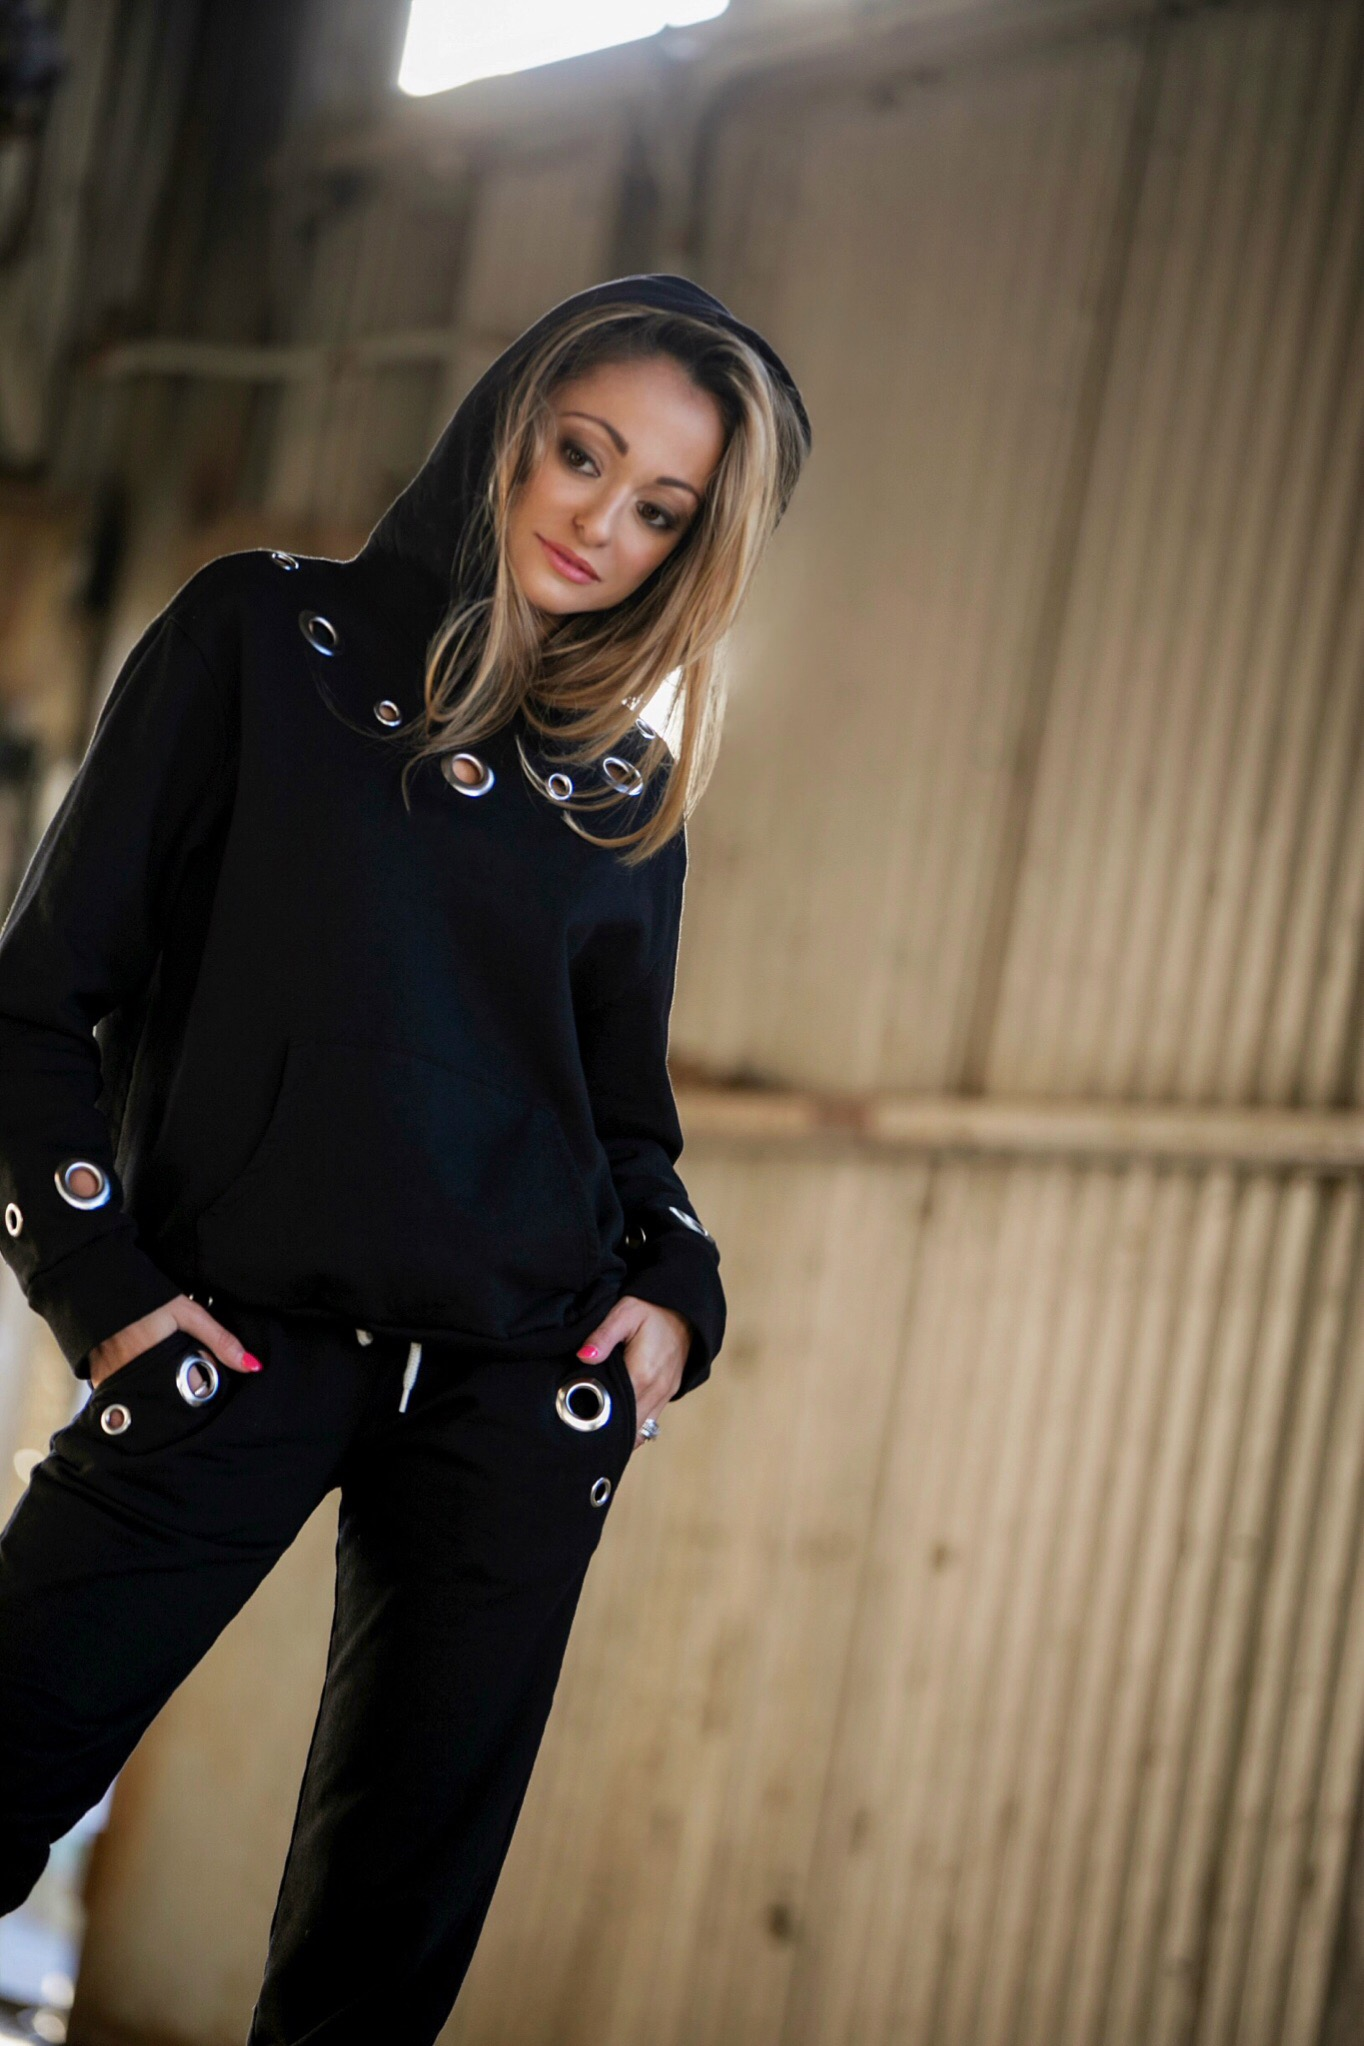 monrow hoodie and sweats with grommets